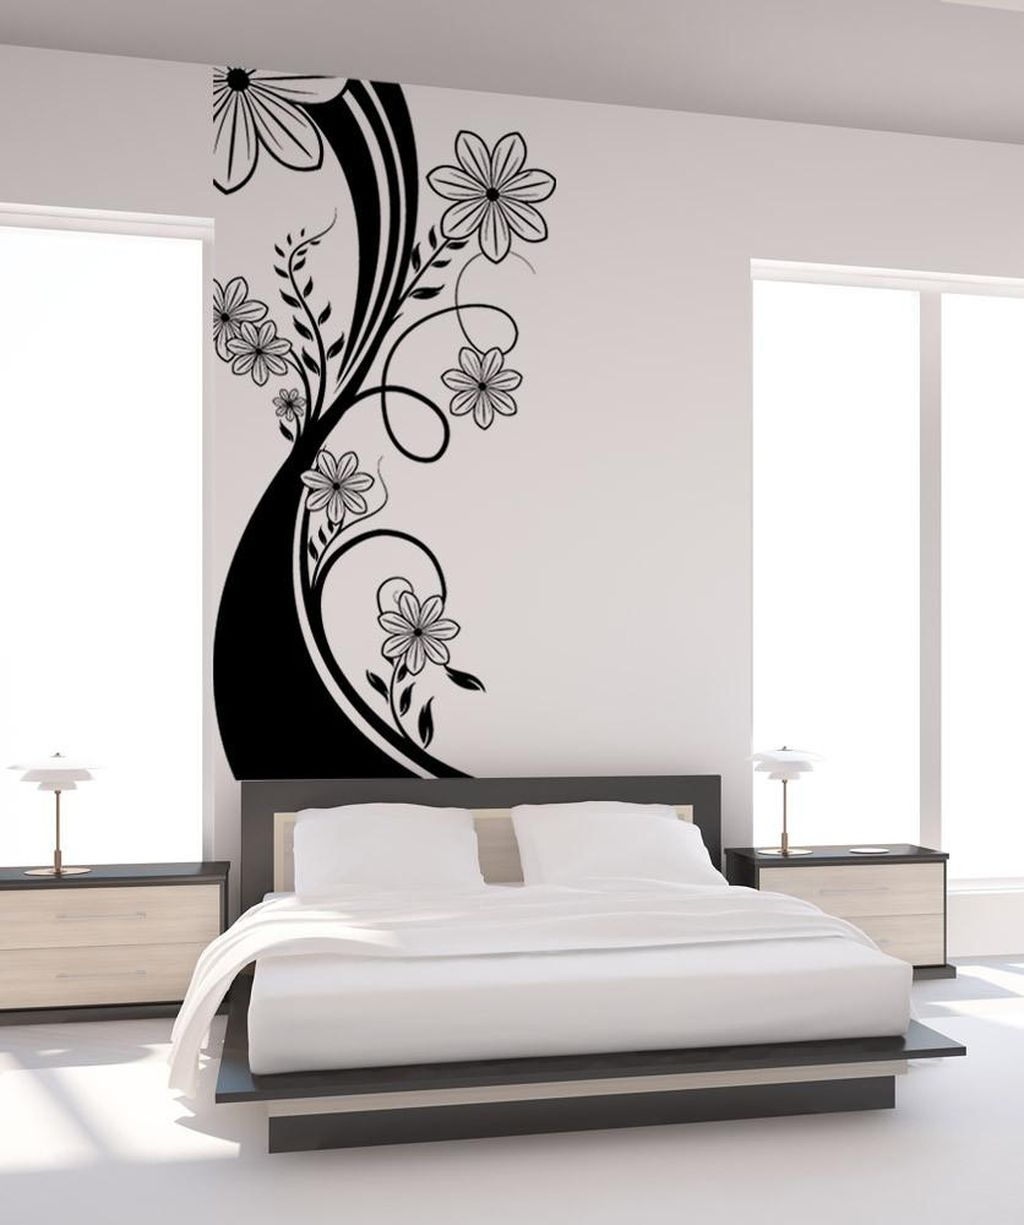 Vintage Bedroom Wall Decals Design Ideas To Try25